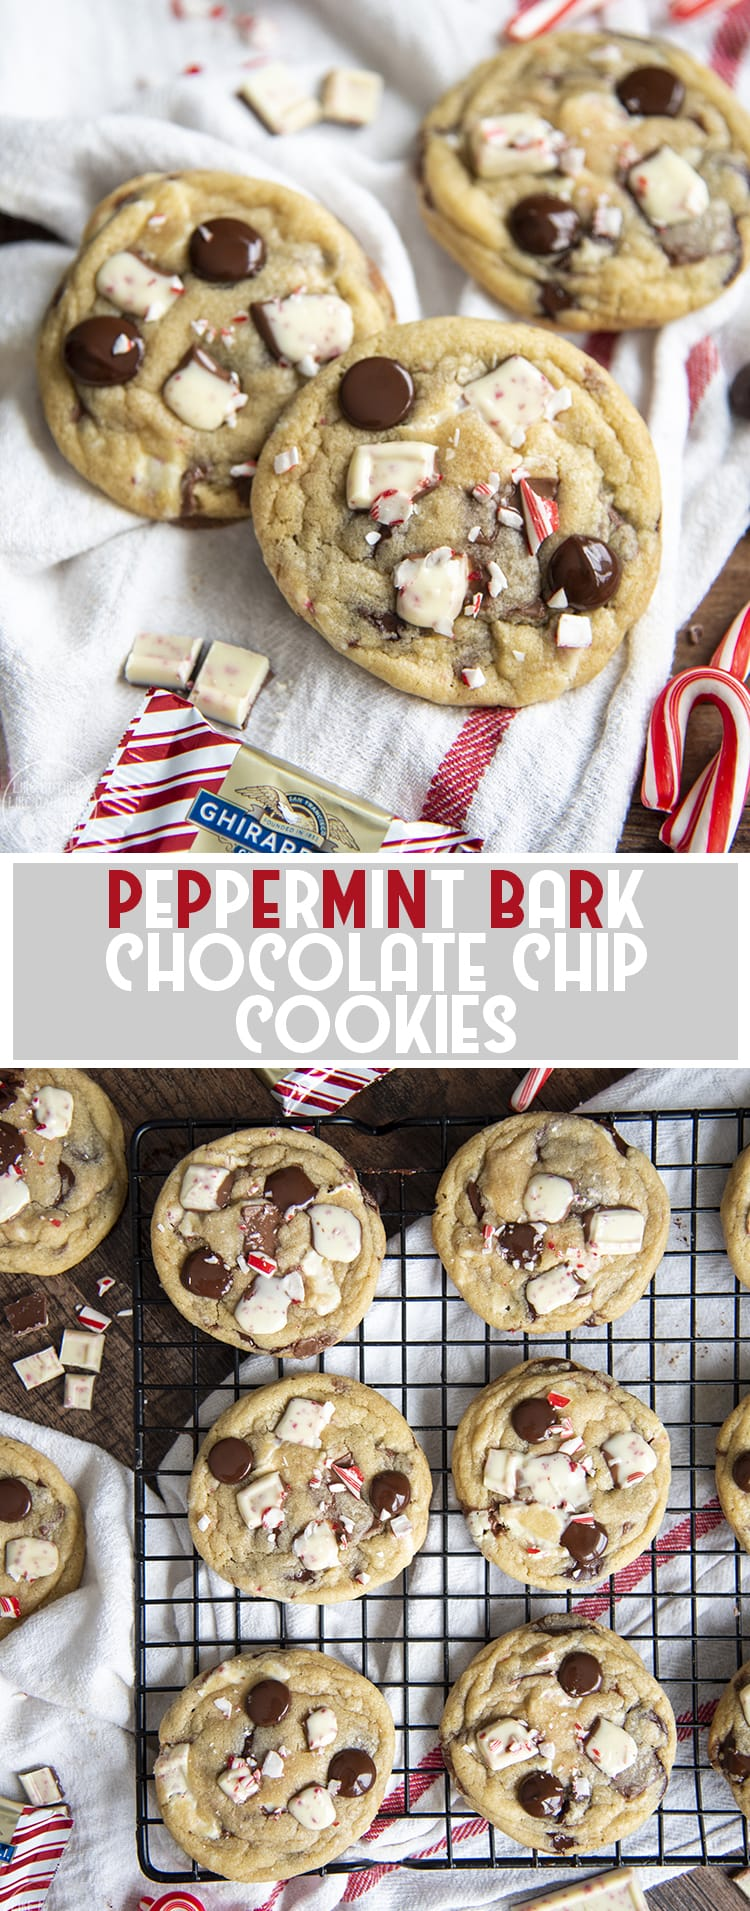 These peppermint bark chocolate chip cookies are one of the best Christmas cookies, with chopped up peppermint bark, and chocolate chips in every bite.